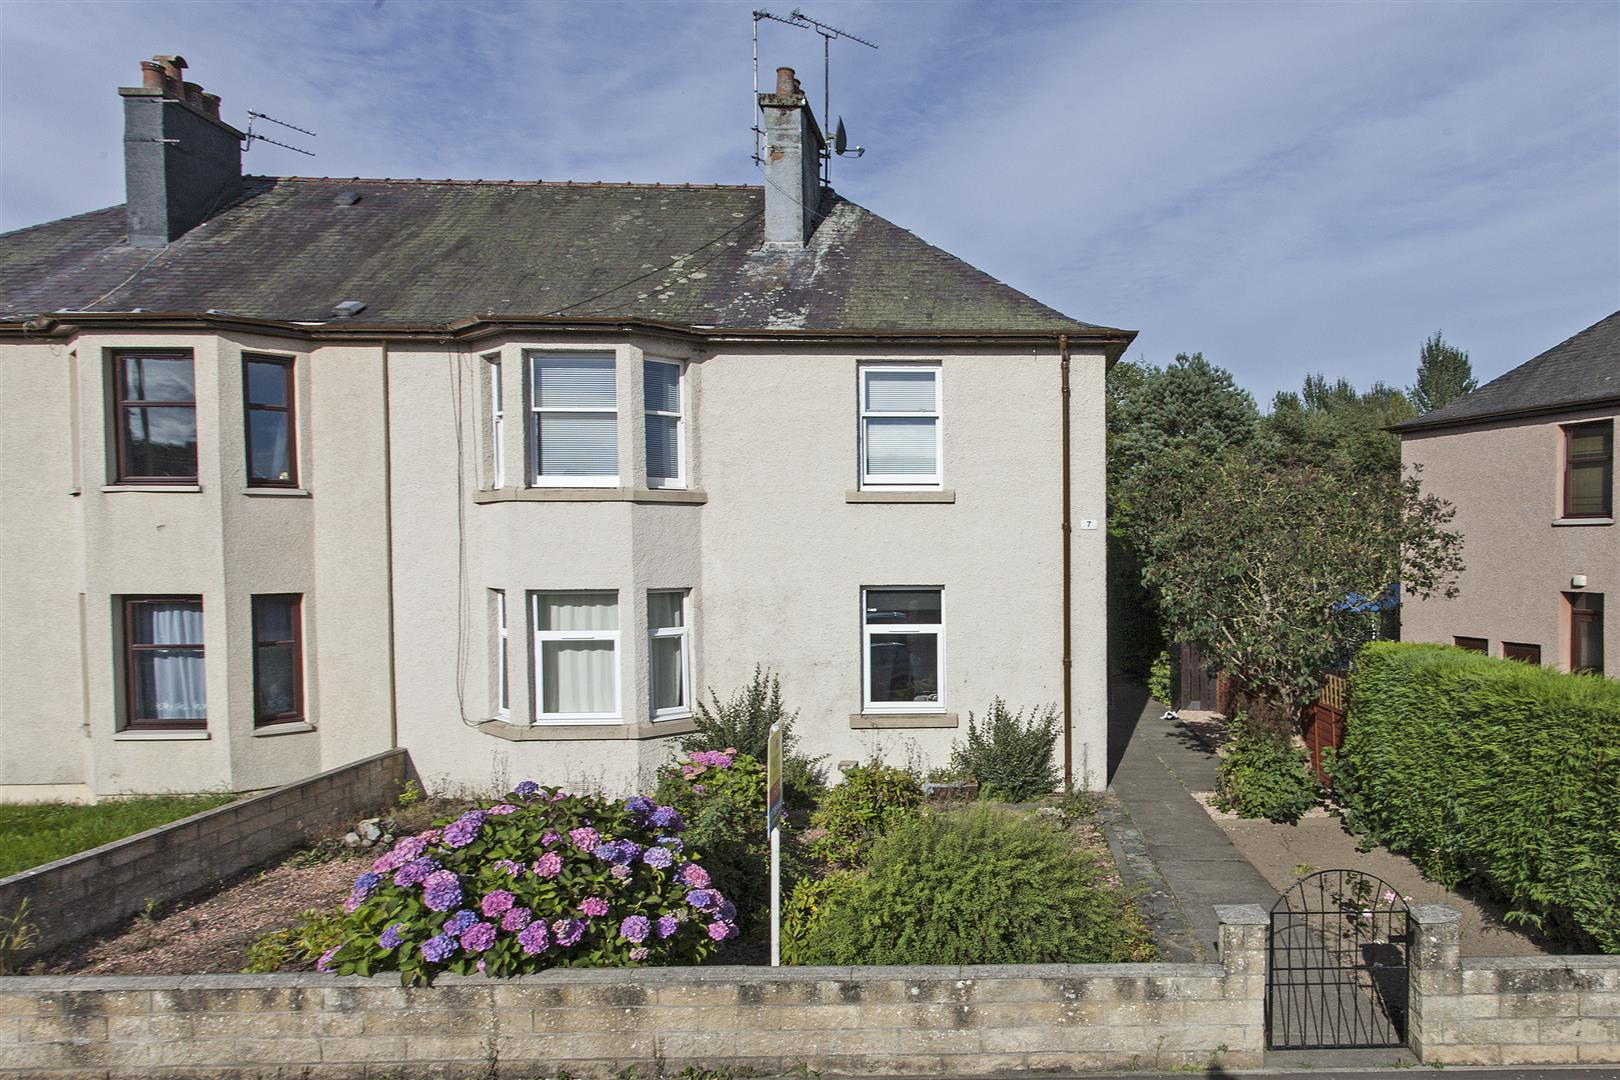 7, Hatton Place, Rattray, Rattray Blairgowrie, Perthshire, PH10 7AN, UK